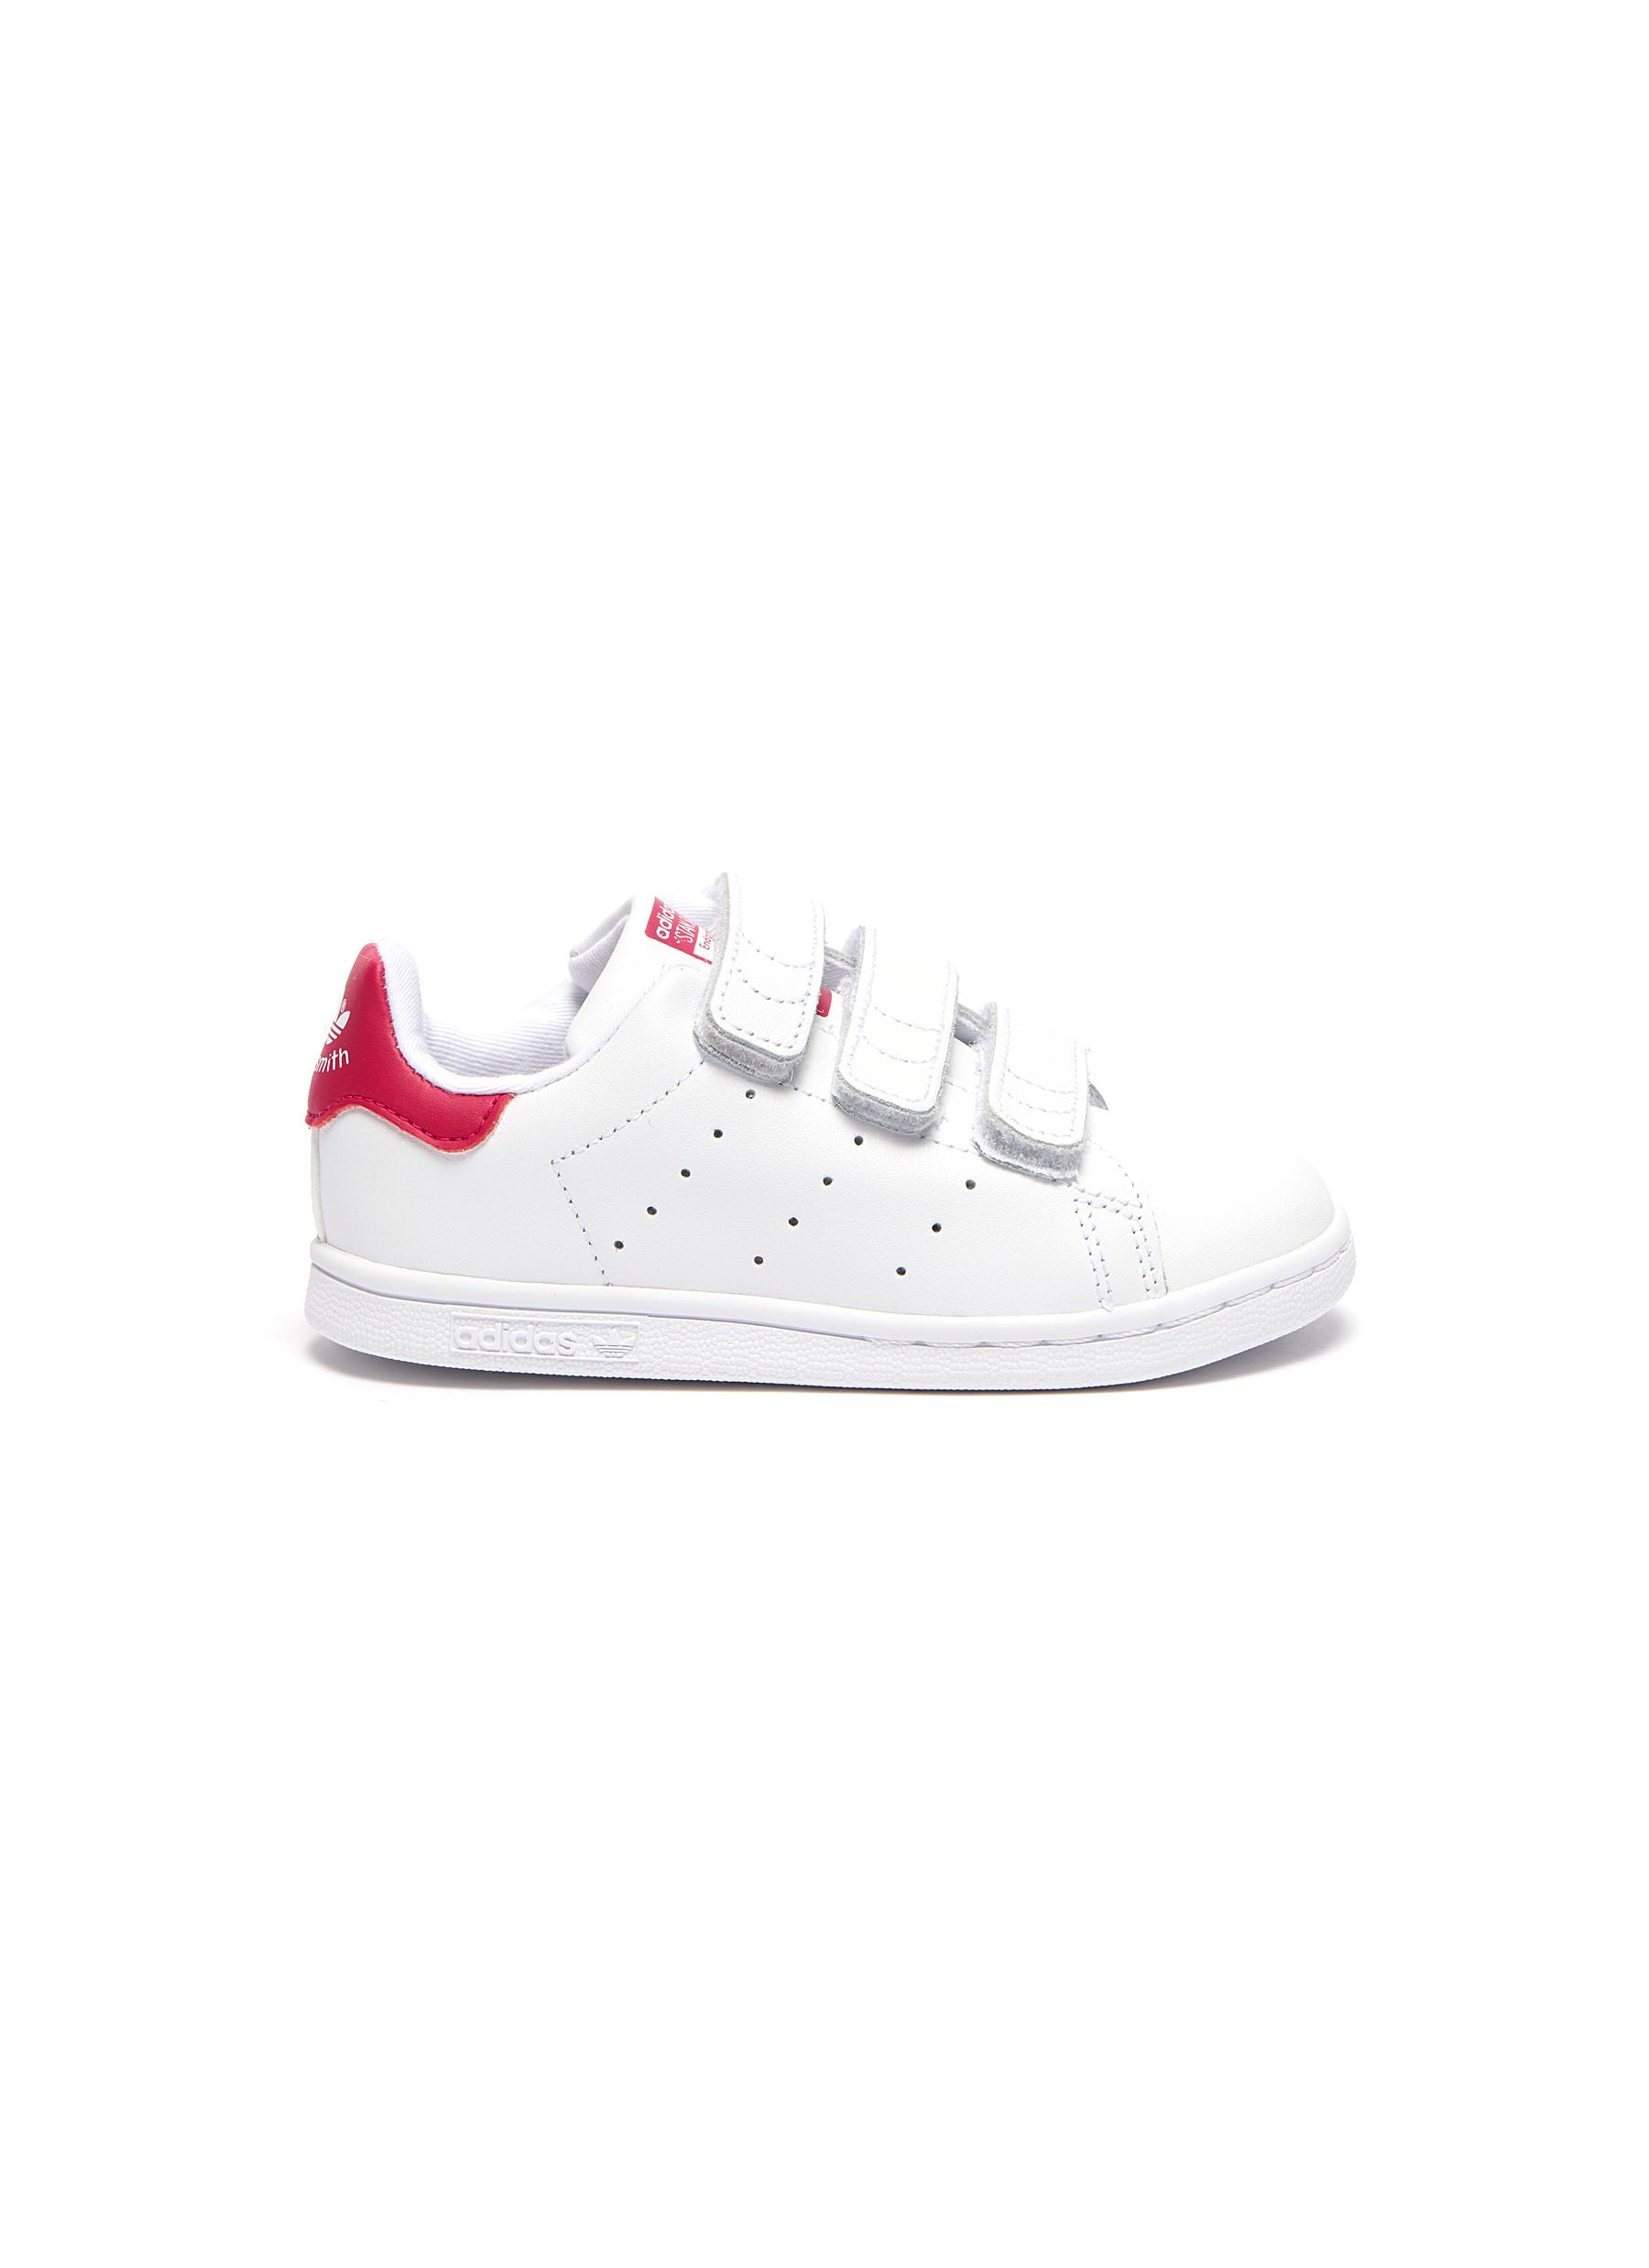 new style 493b2 c528e adidas.  Stan Smith CF I  leather toddler sneakers